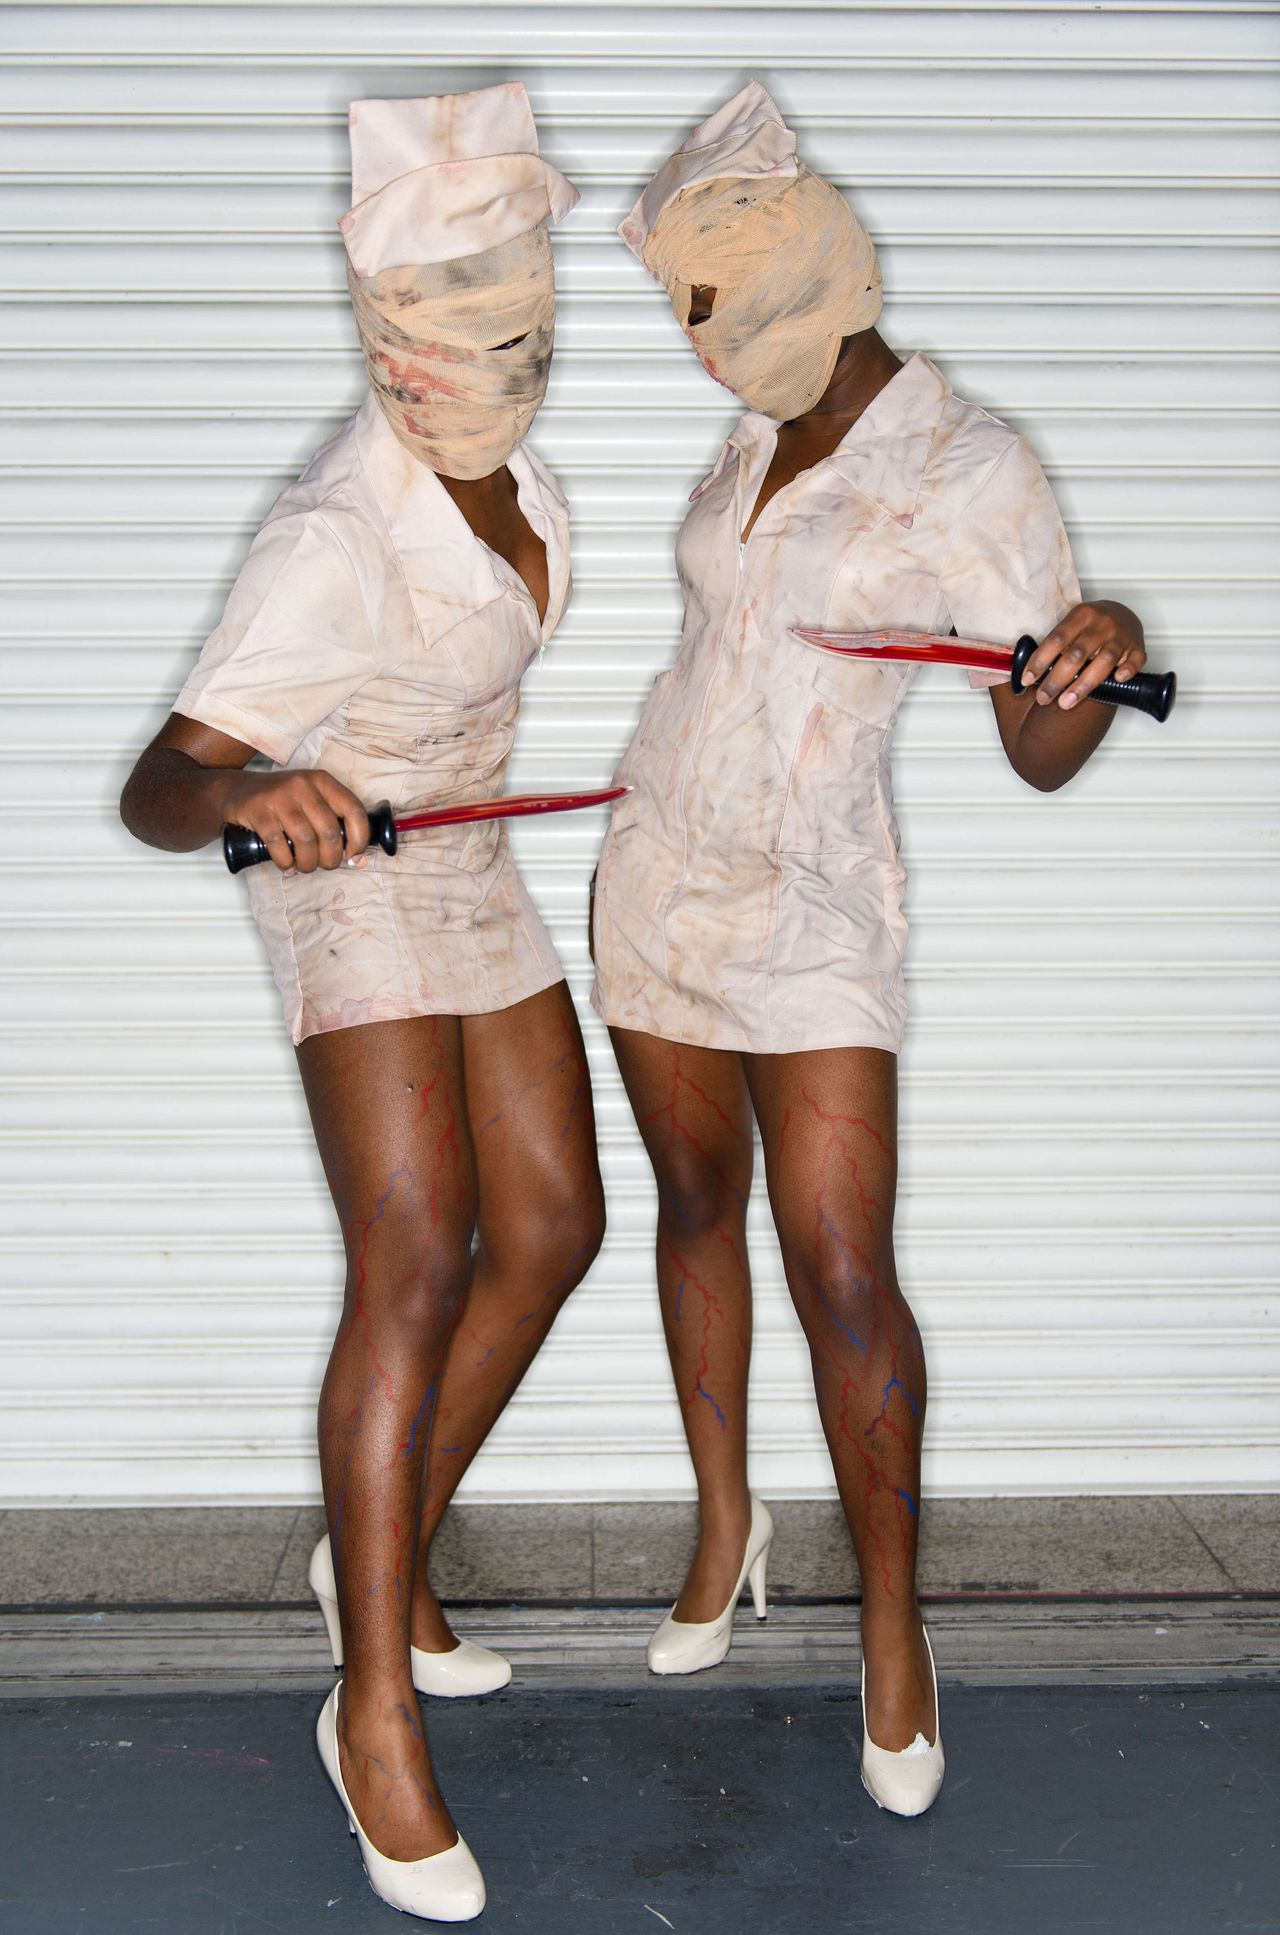 """""""Osato"""" and """"Ades"""" pose in their """"Silent Hill"""" nurse costumes during the London Comic Con event at the ExCel centre in east London on October 28, 2012. AFP PHOTO / LEON NEAL"""